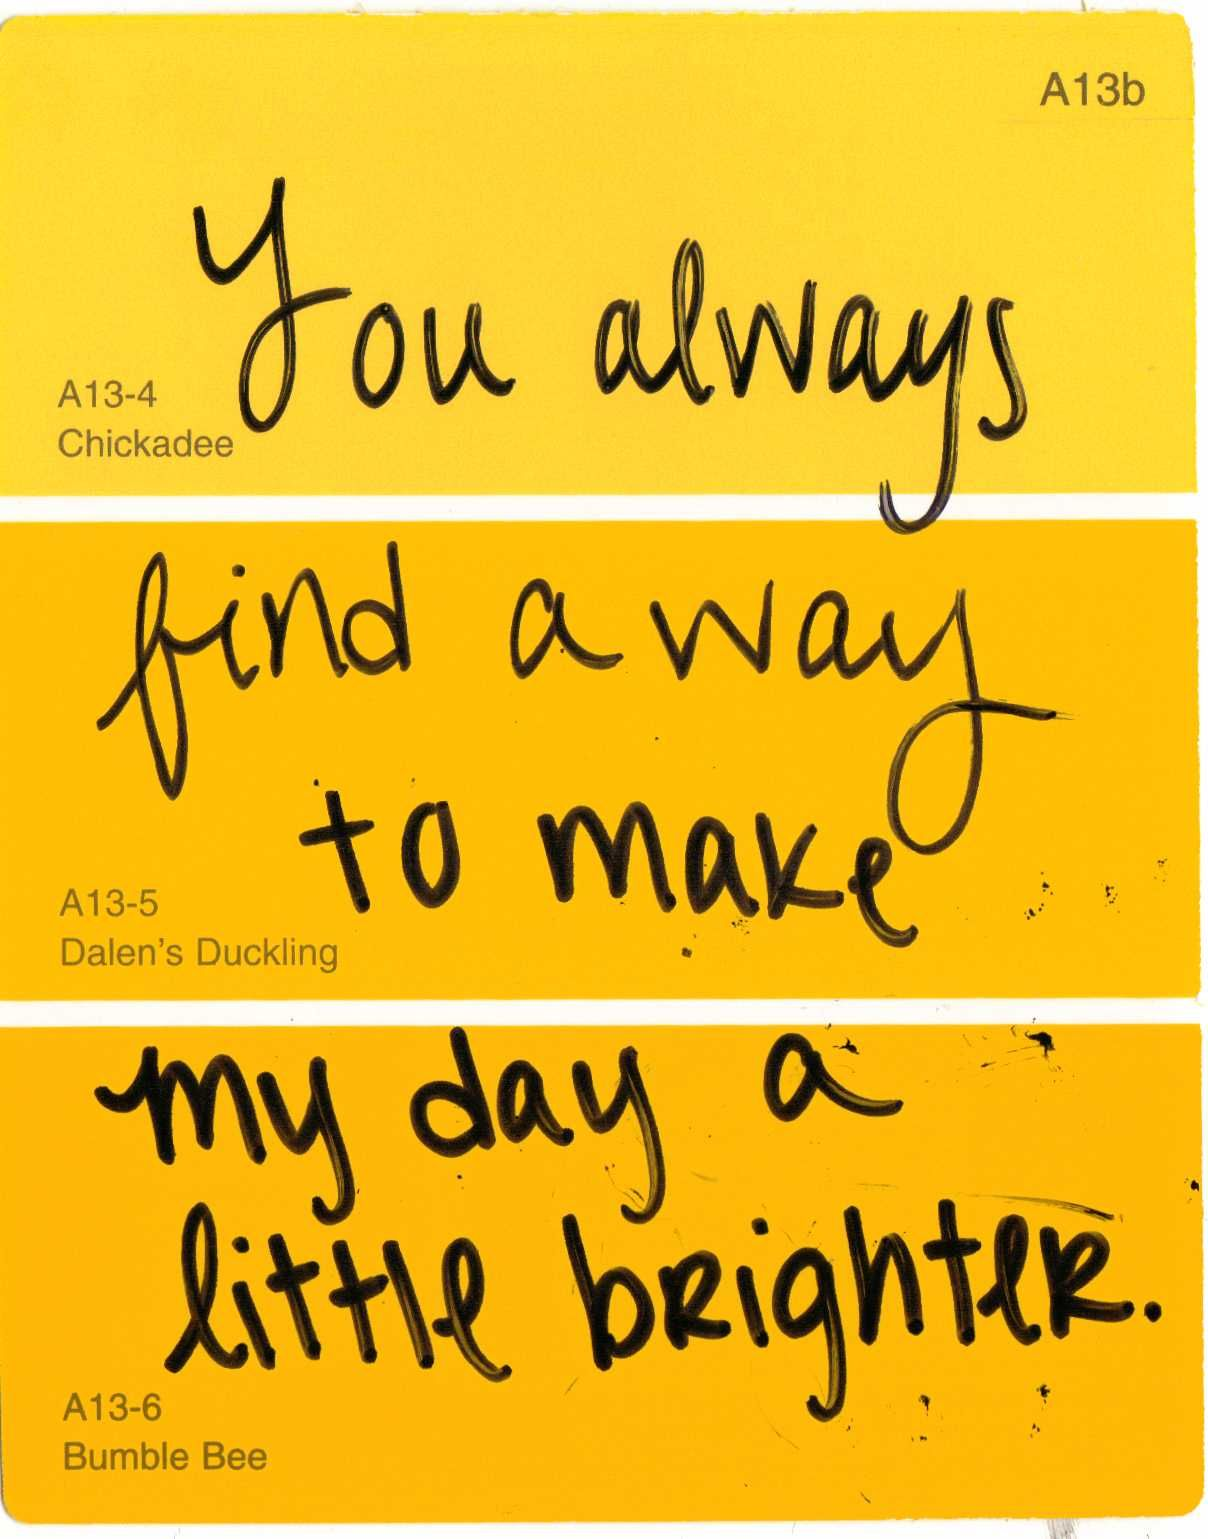 Friends Make The Day Brighter Quotes Words Sayings